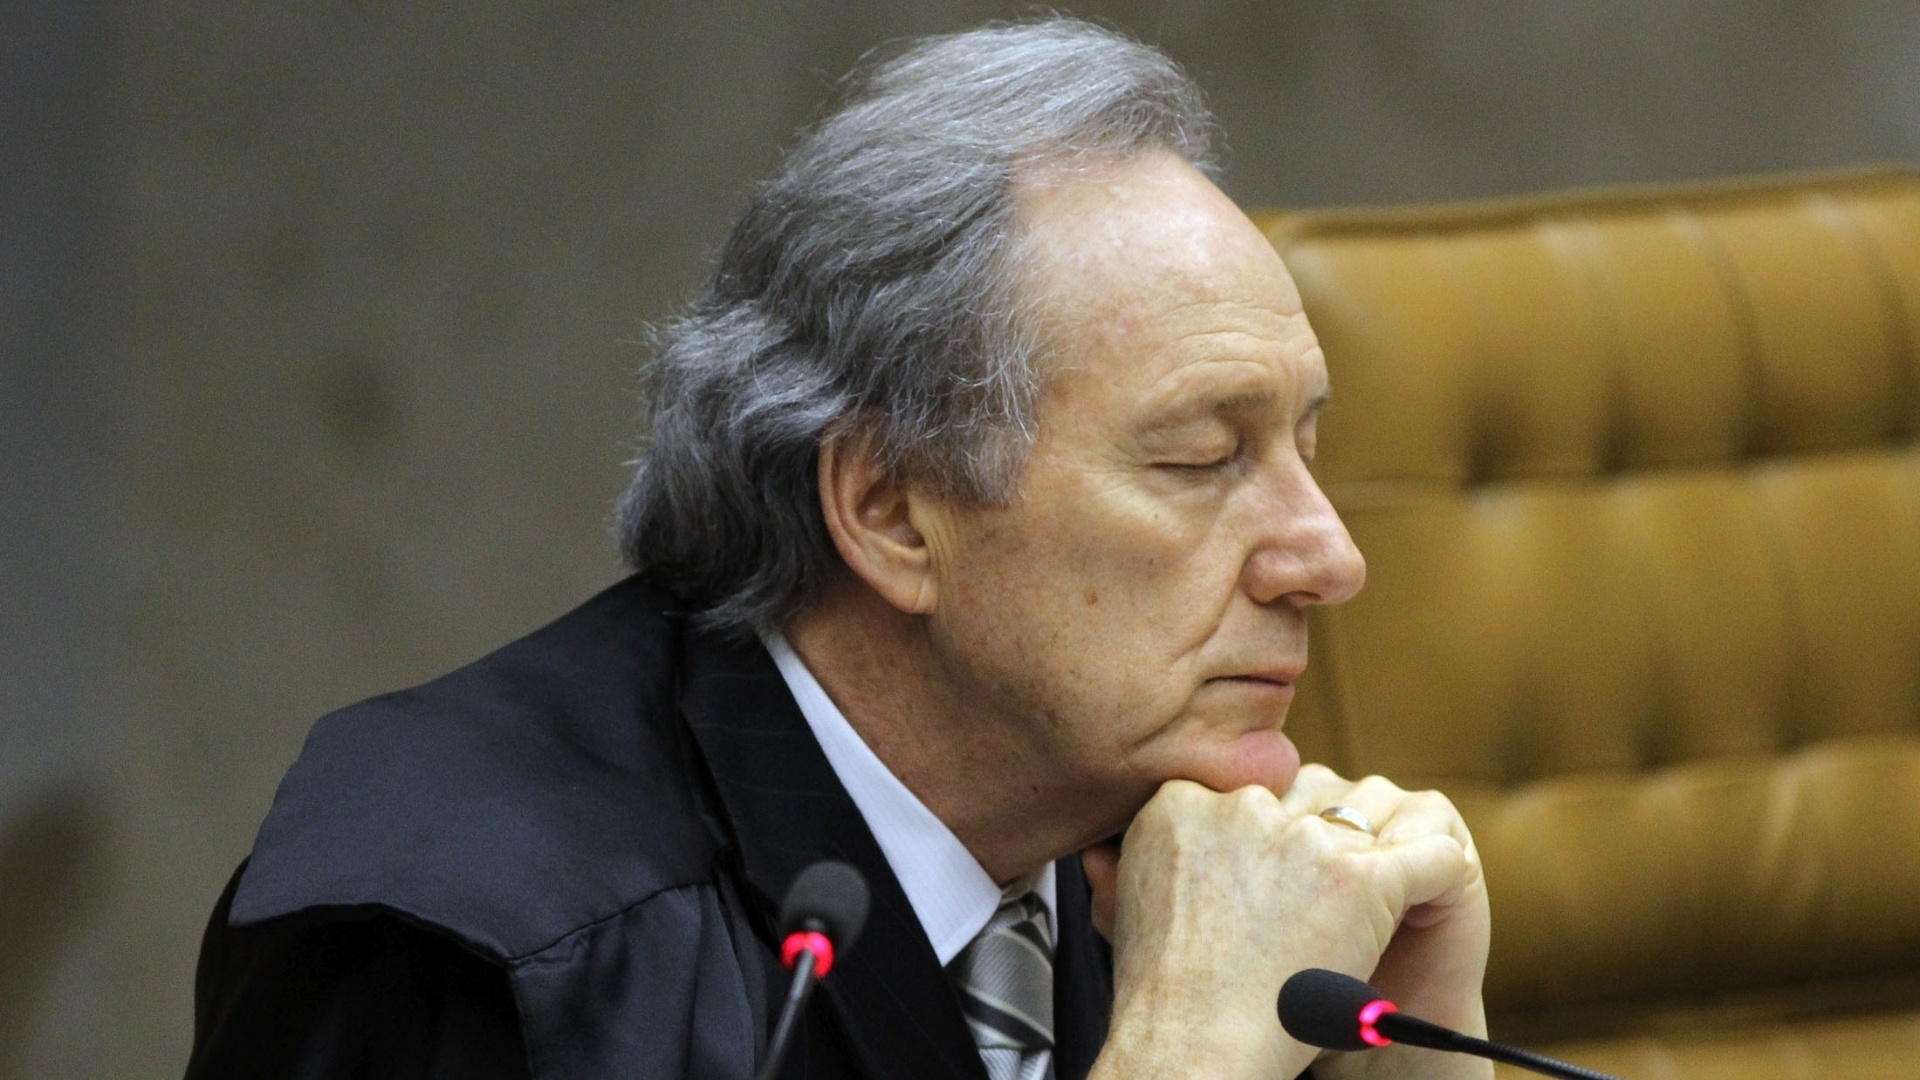 9.out.2012 - O ministro Ricardo Lewandowski acompanha o julgamento do mensalo no plenrio do STF, em Braslia. O ministro Dias Toffoli, ex-advogado do PT, votou pela absolvio do ex-ministro Jos Dirceu e pela condenao do ex-tesoureiro do partido Delbio Soares, do ex-presidente da sigla Jos Genoino e do publicitrio Marcos Valrio por corrupo ativa